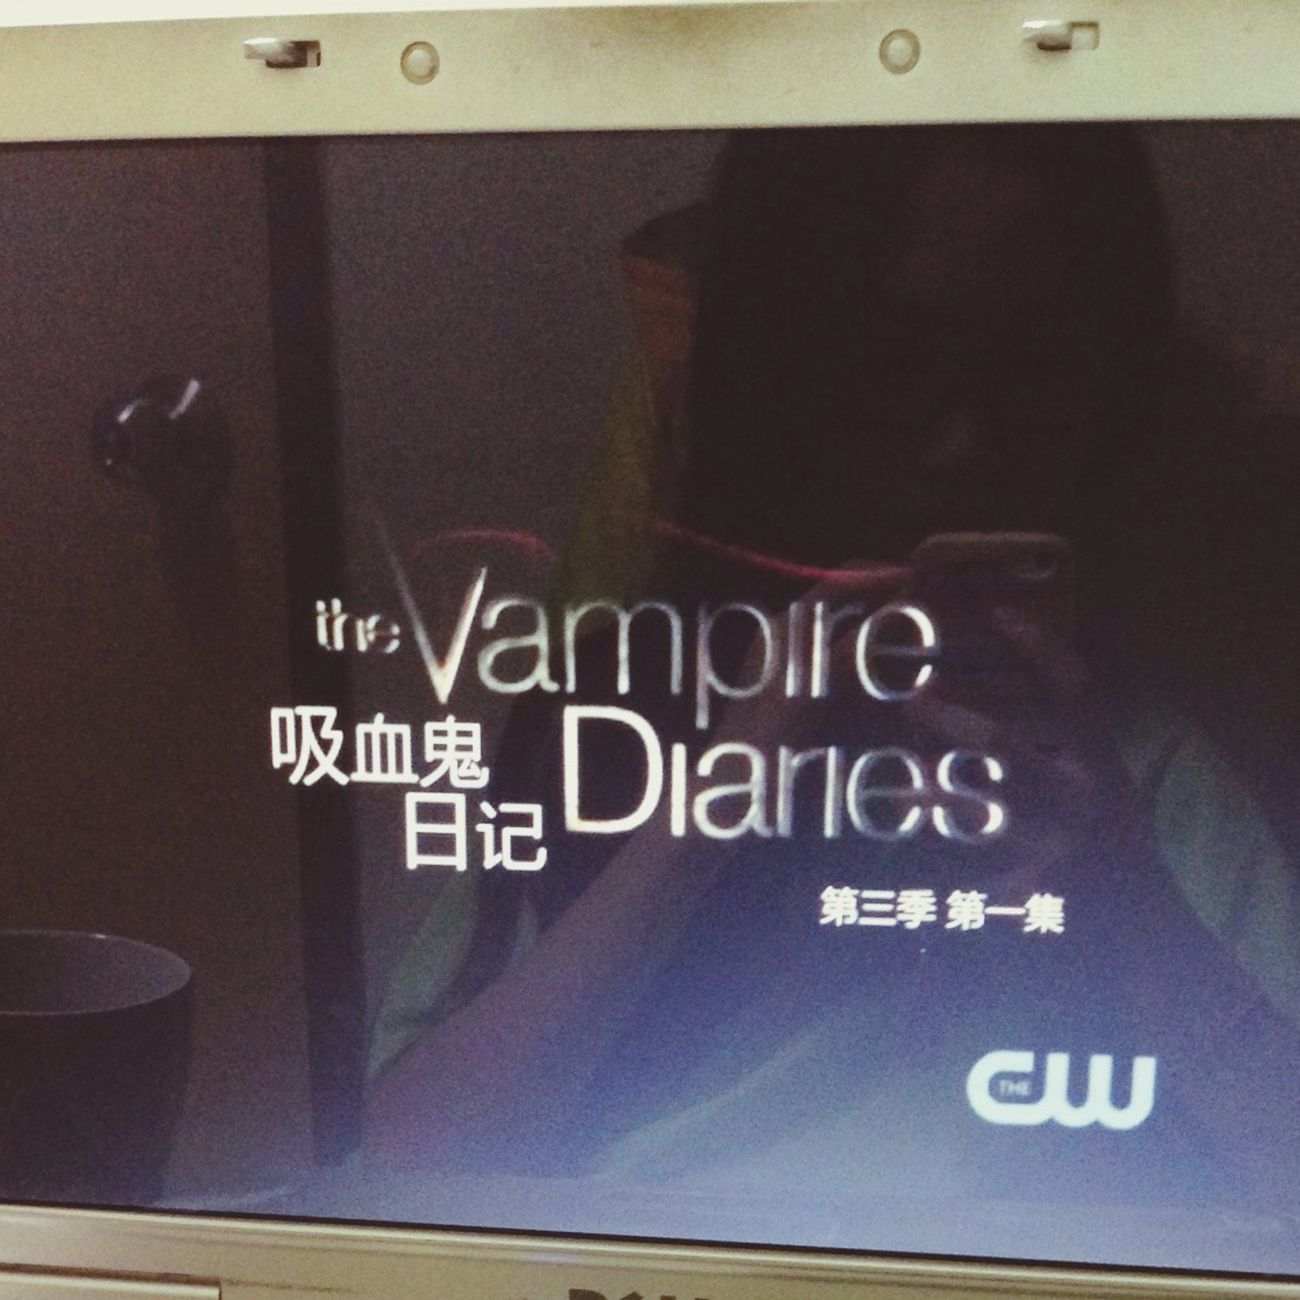 Now watching Thevampirediaries Season 3 Saturday Noon